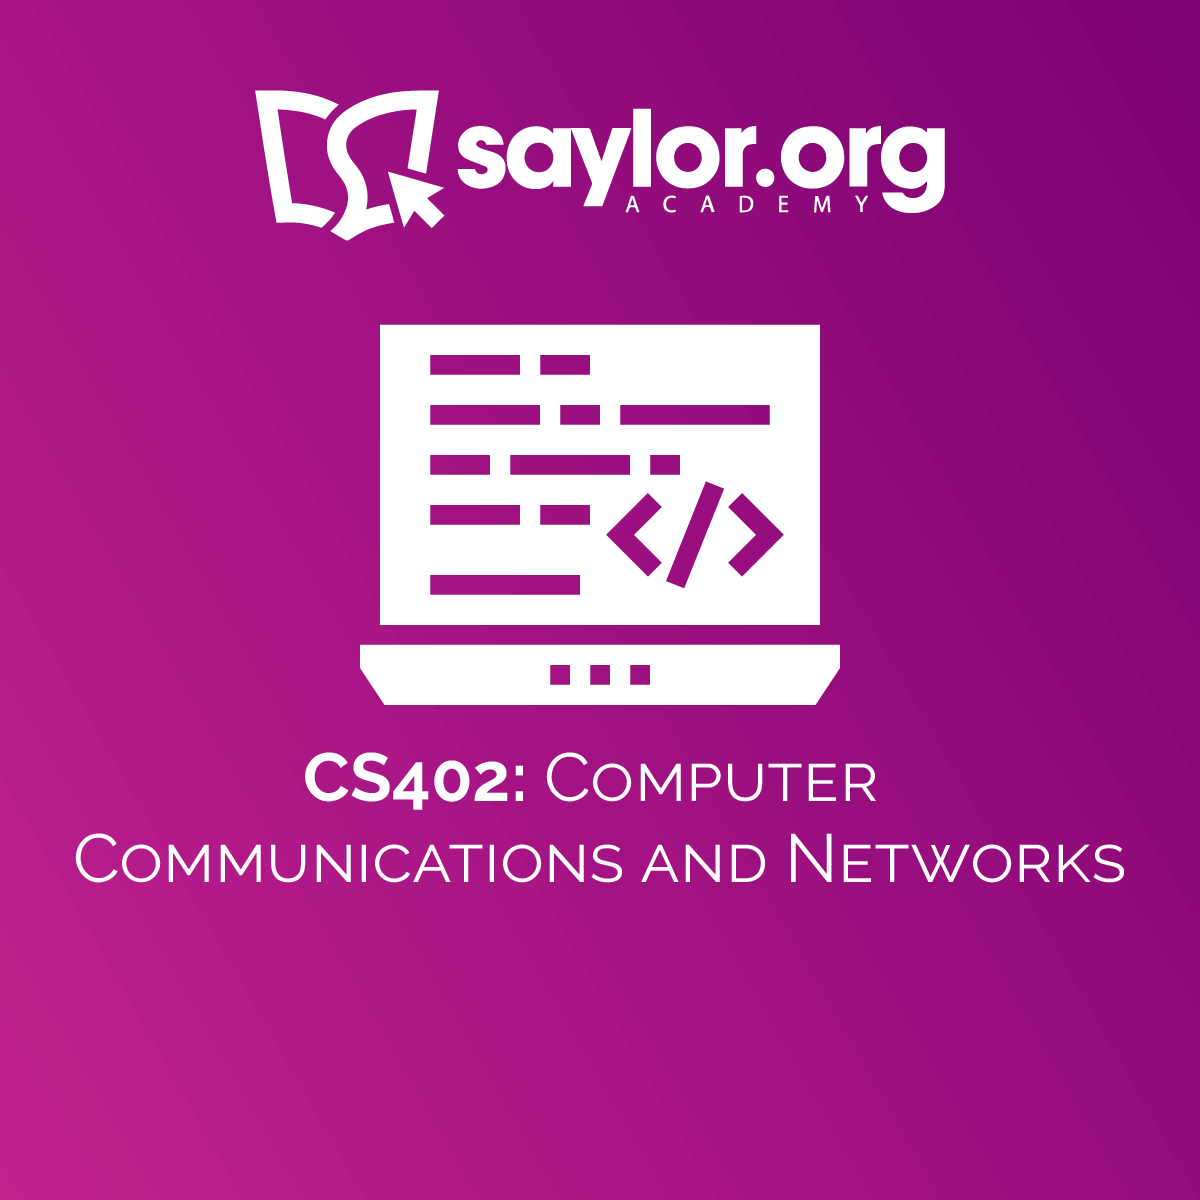 CS402: Computer Communications and Networks | Saylor Academy